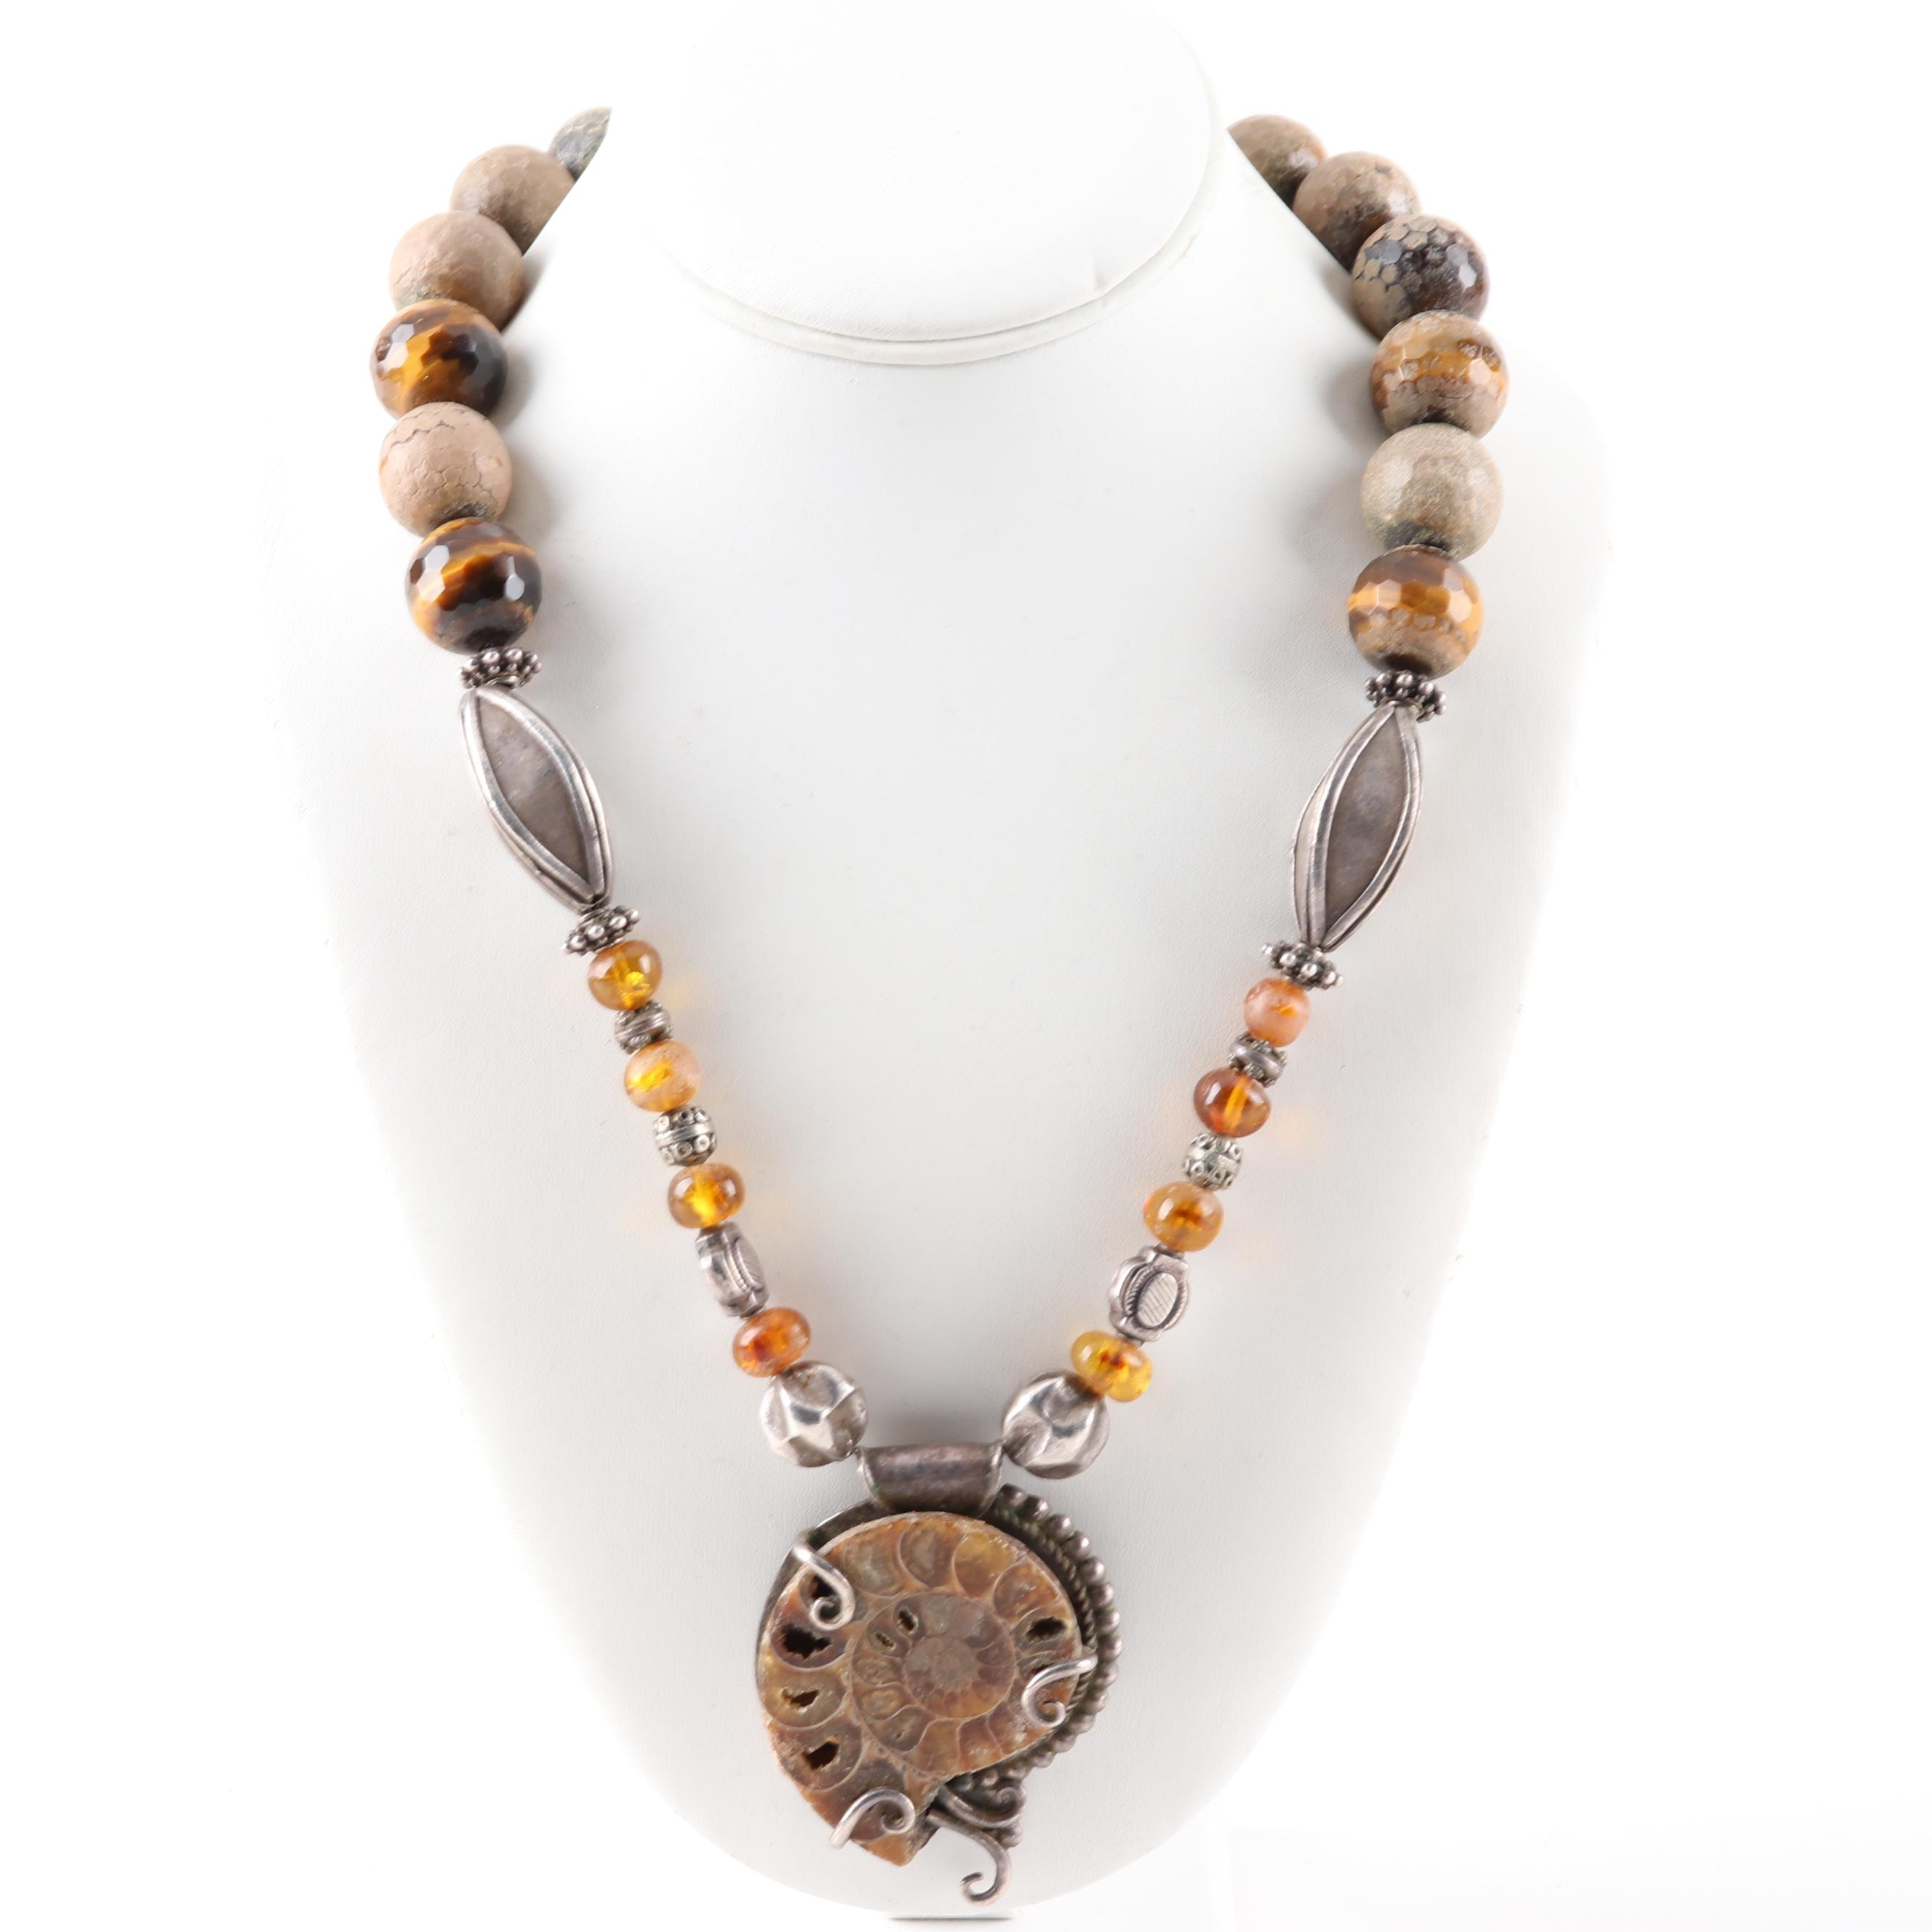 Sterling Silver Ammonite Nautilus Pendant on Tiger's Eye Bead Necklace